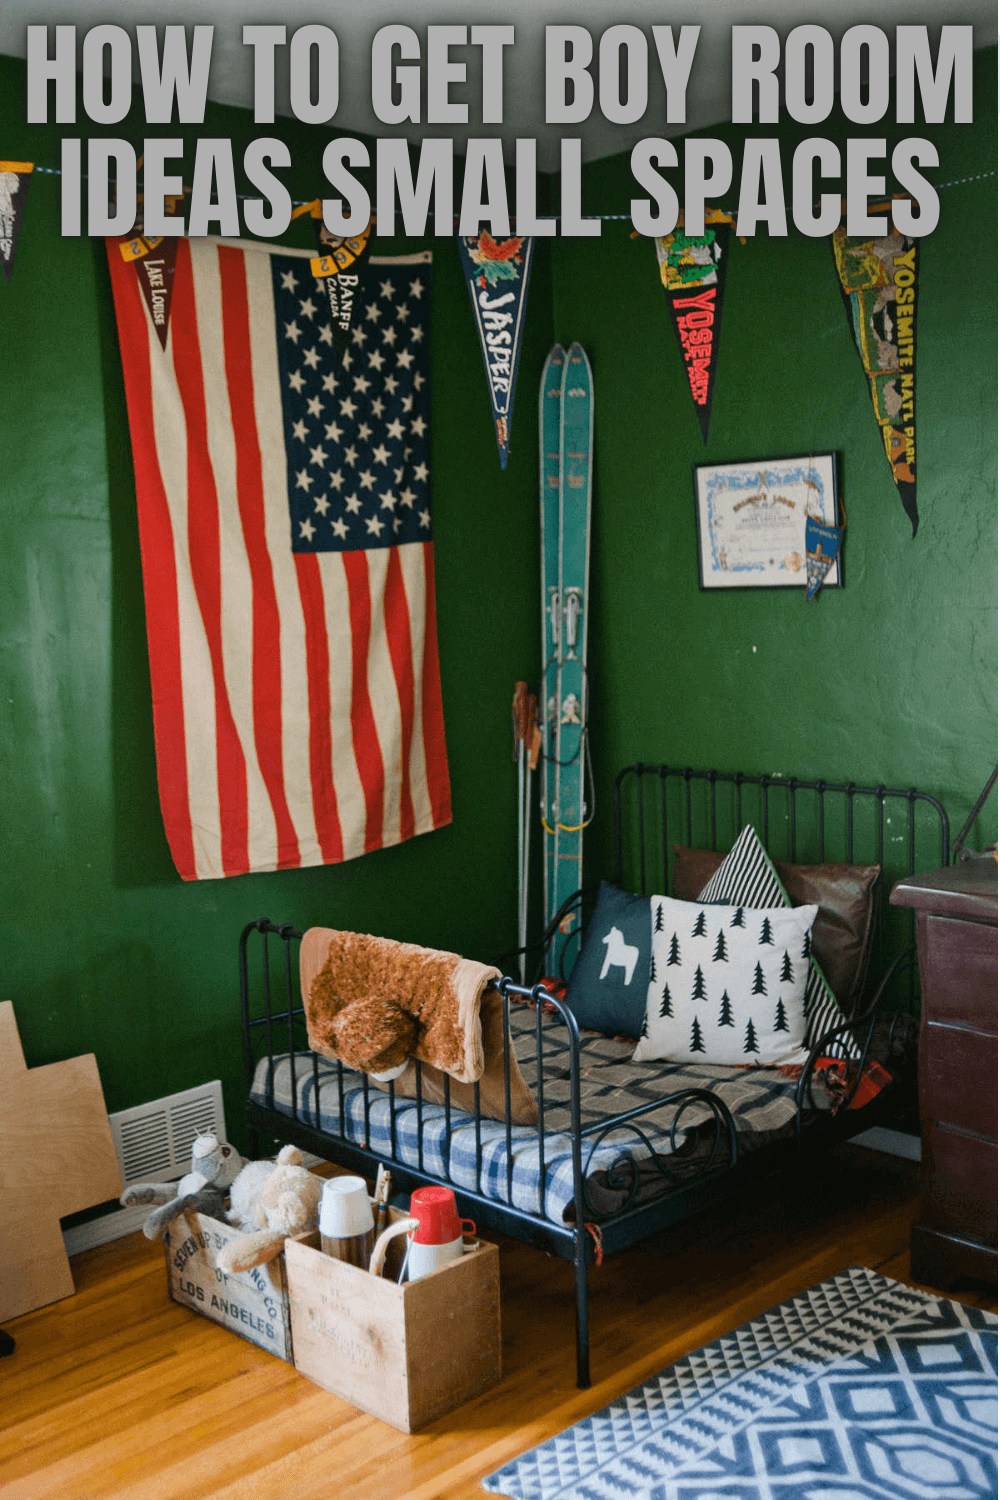 HOW TO GET BOY ROOM IDEAS SMALL SPACES